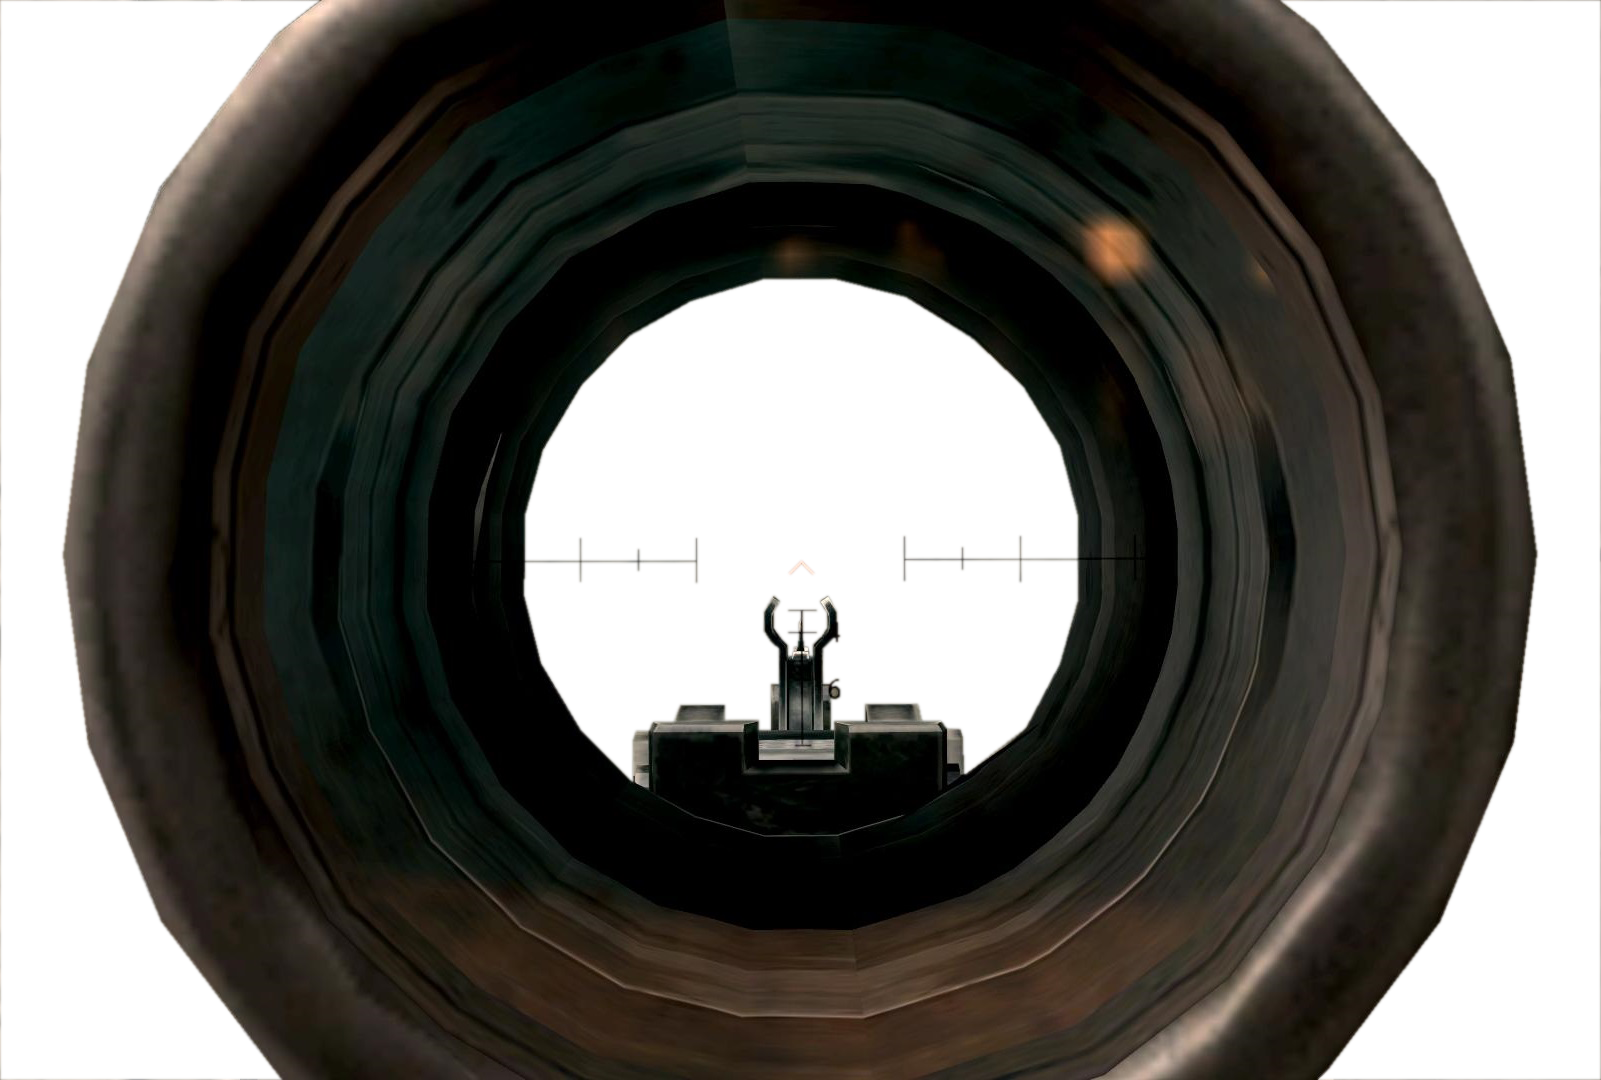 Free download of Scopes PNG in High Resolution